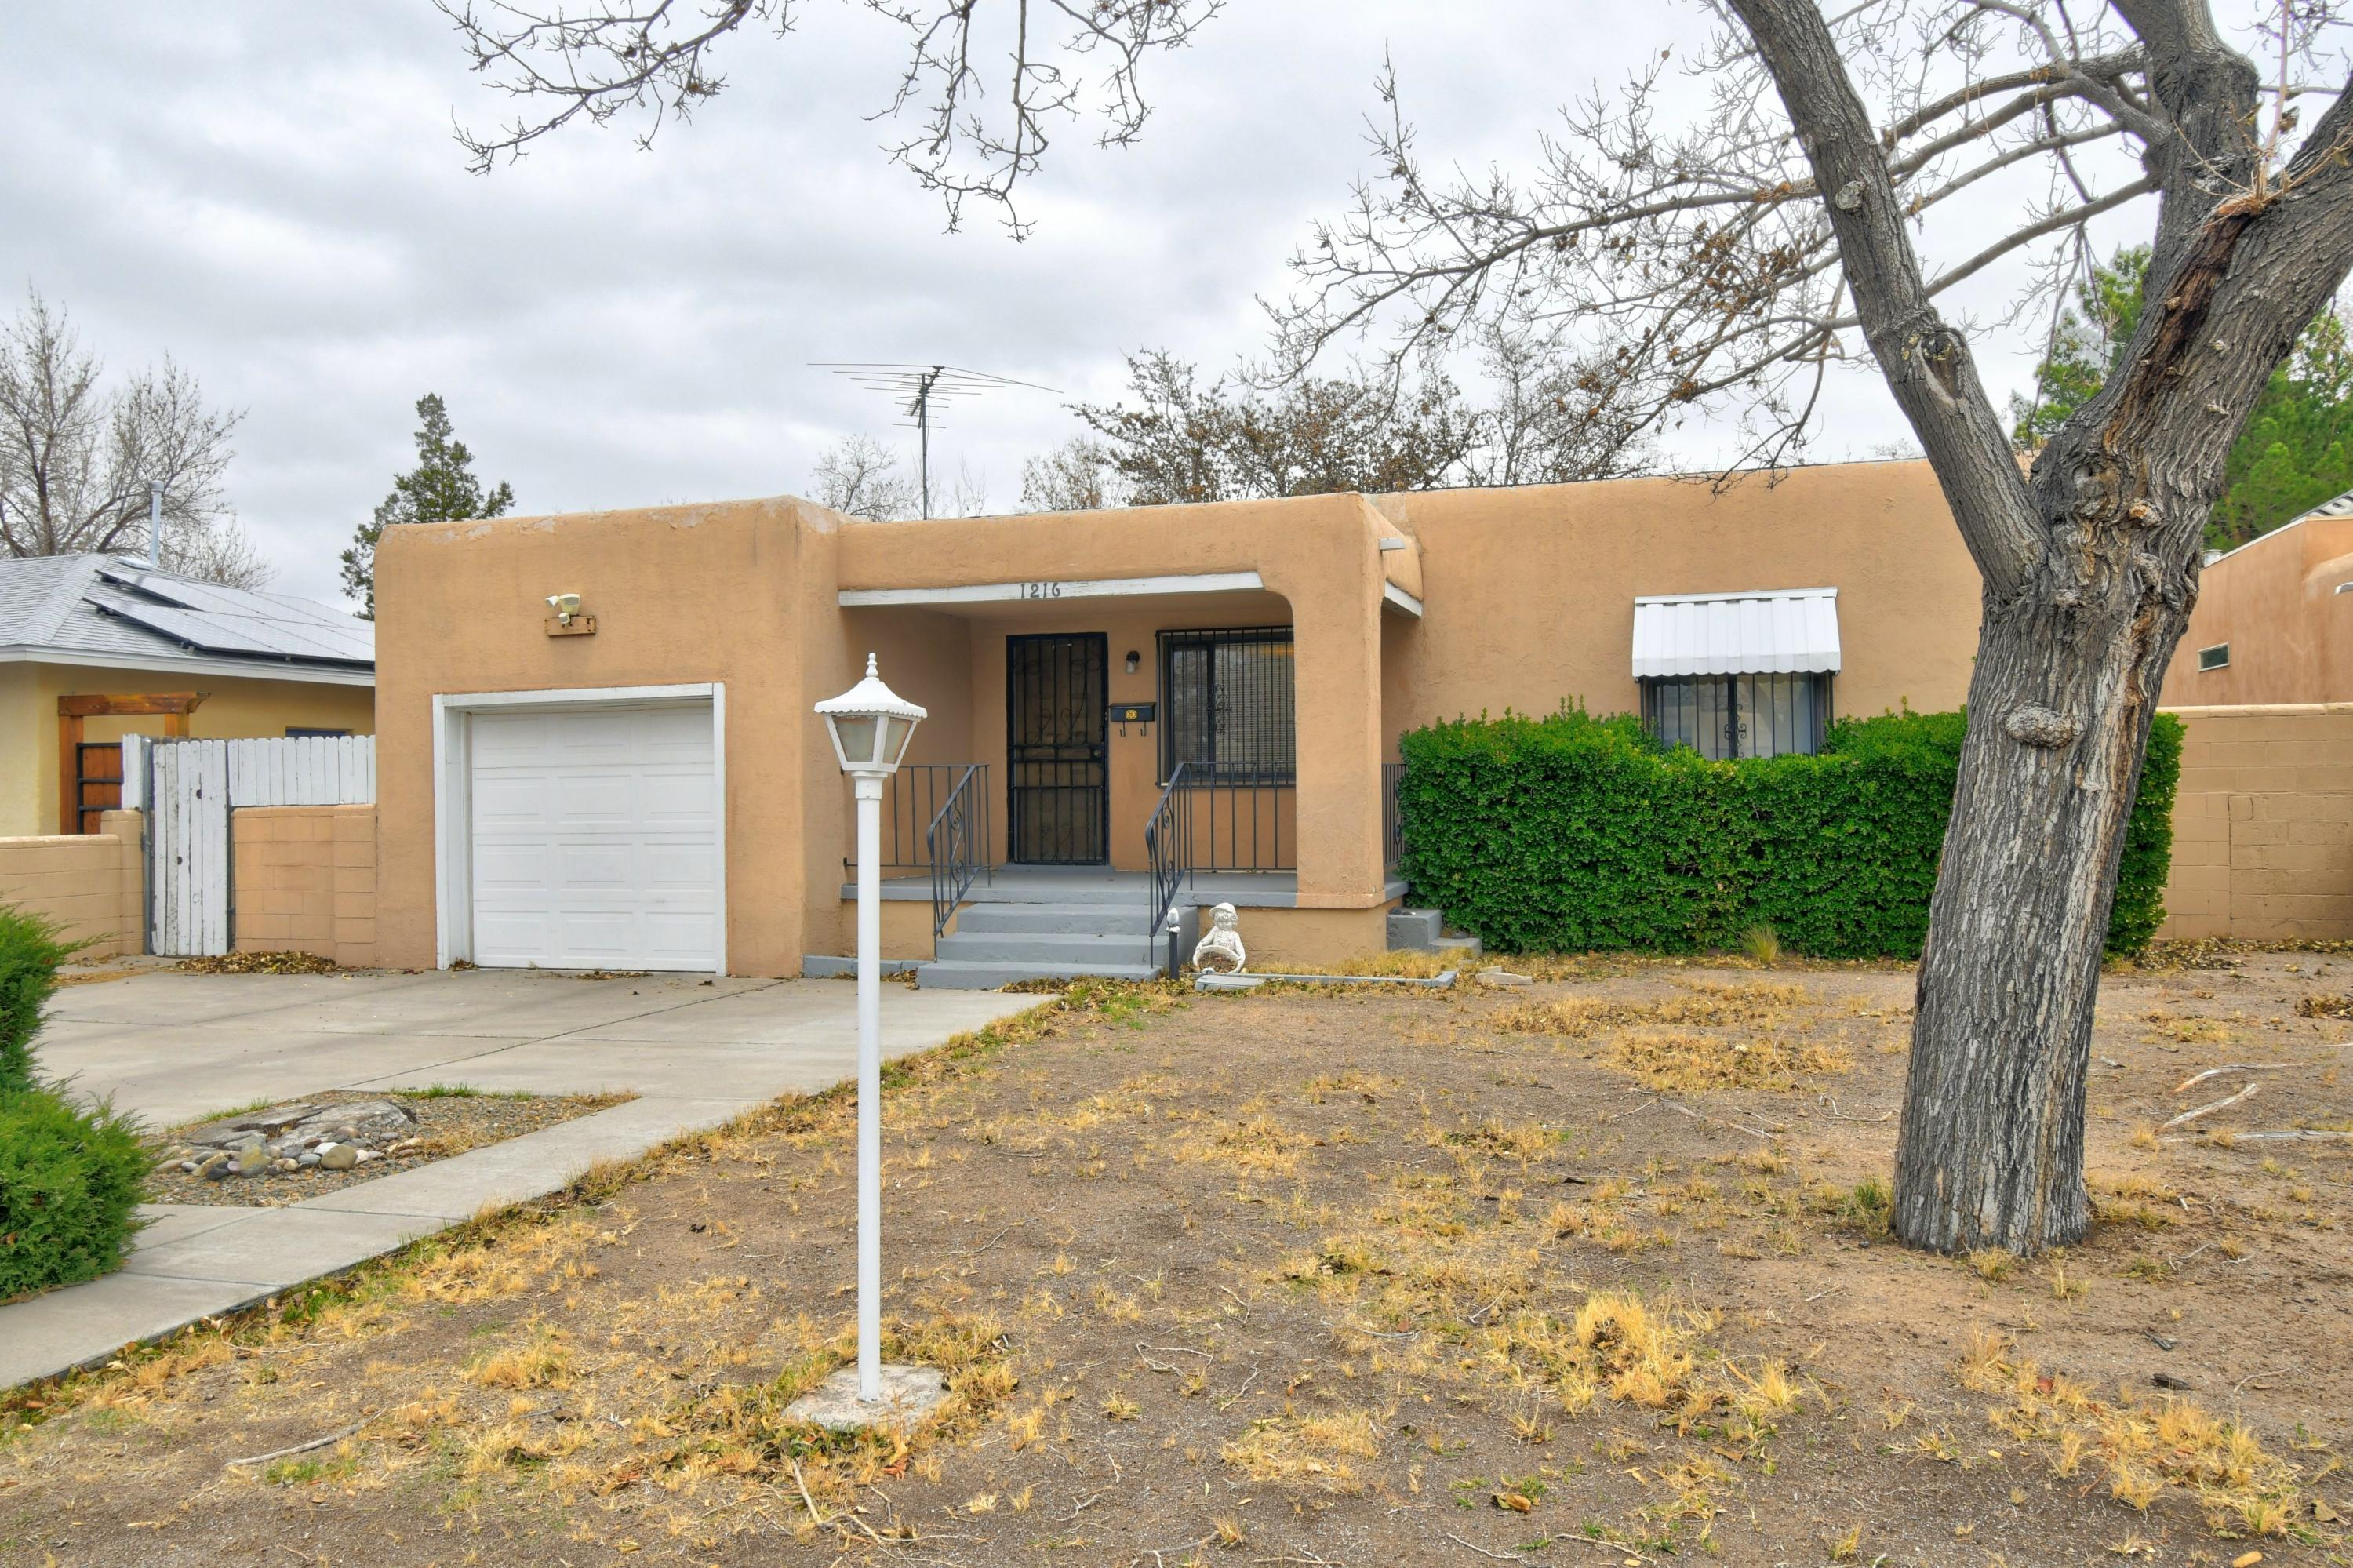 Charming home in the UNM area with a ton of character and cute curb appeal! Spacious kitchen with a ton of cabinetry and counter tops, updated and modern bathrooms, ceiling fans, cove ceilings and beautiful hardwood floors in the living room! Cozy backyard with a relaxing covered patio and an extra storage building!